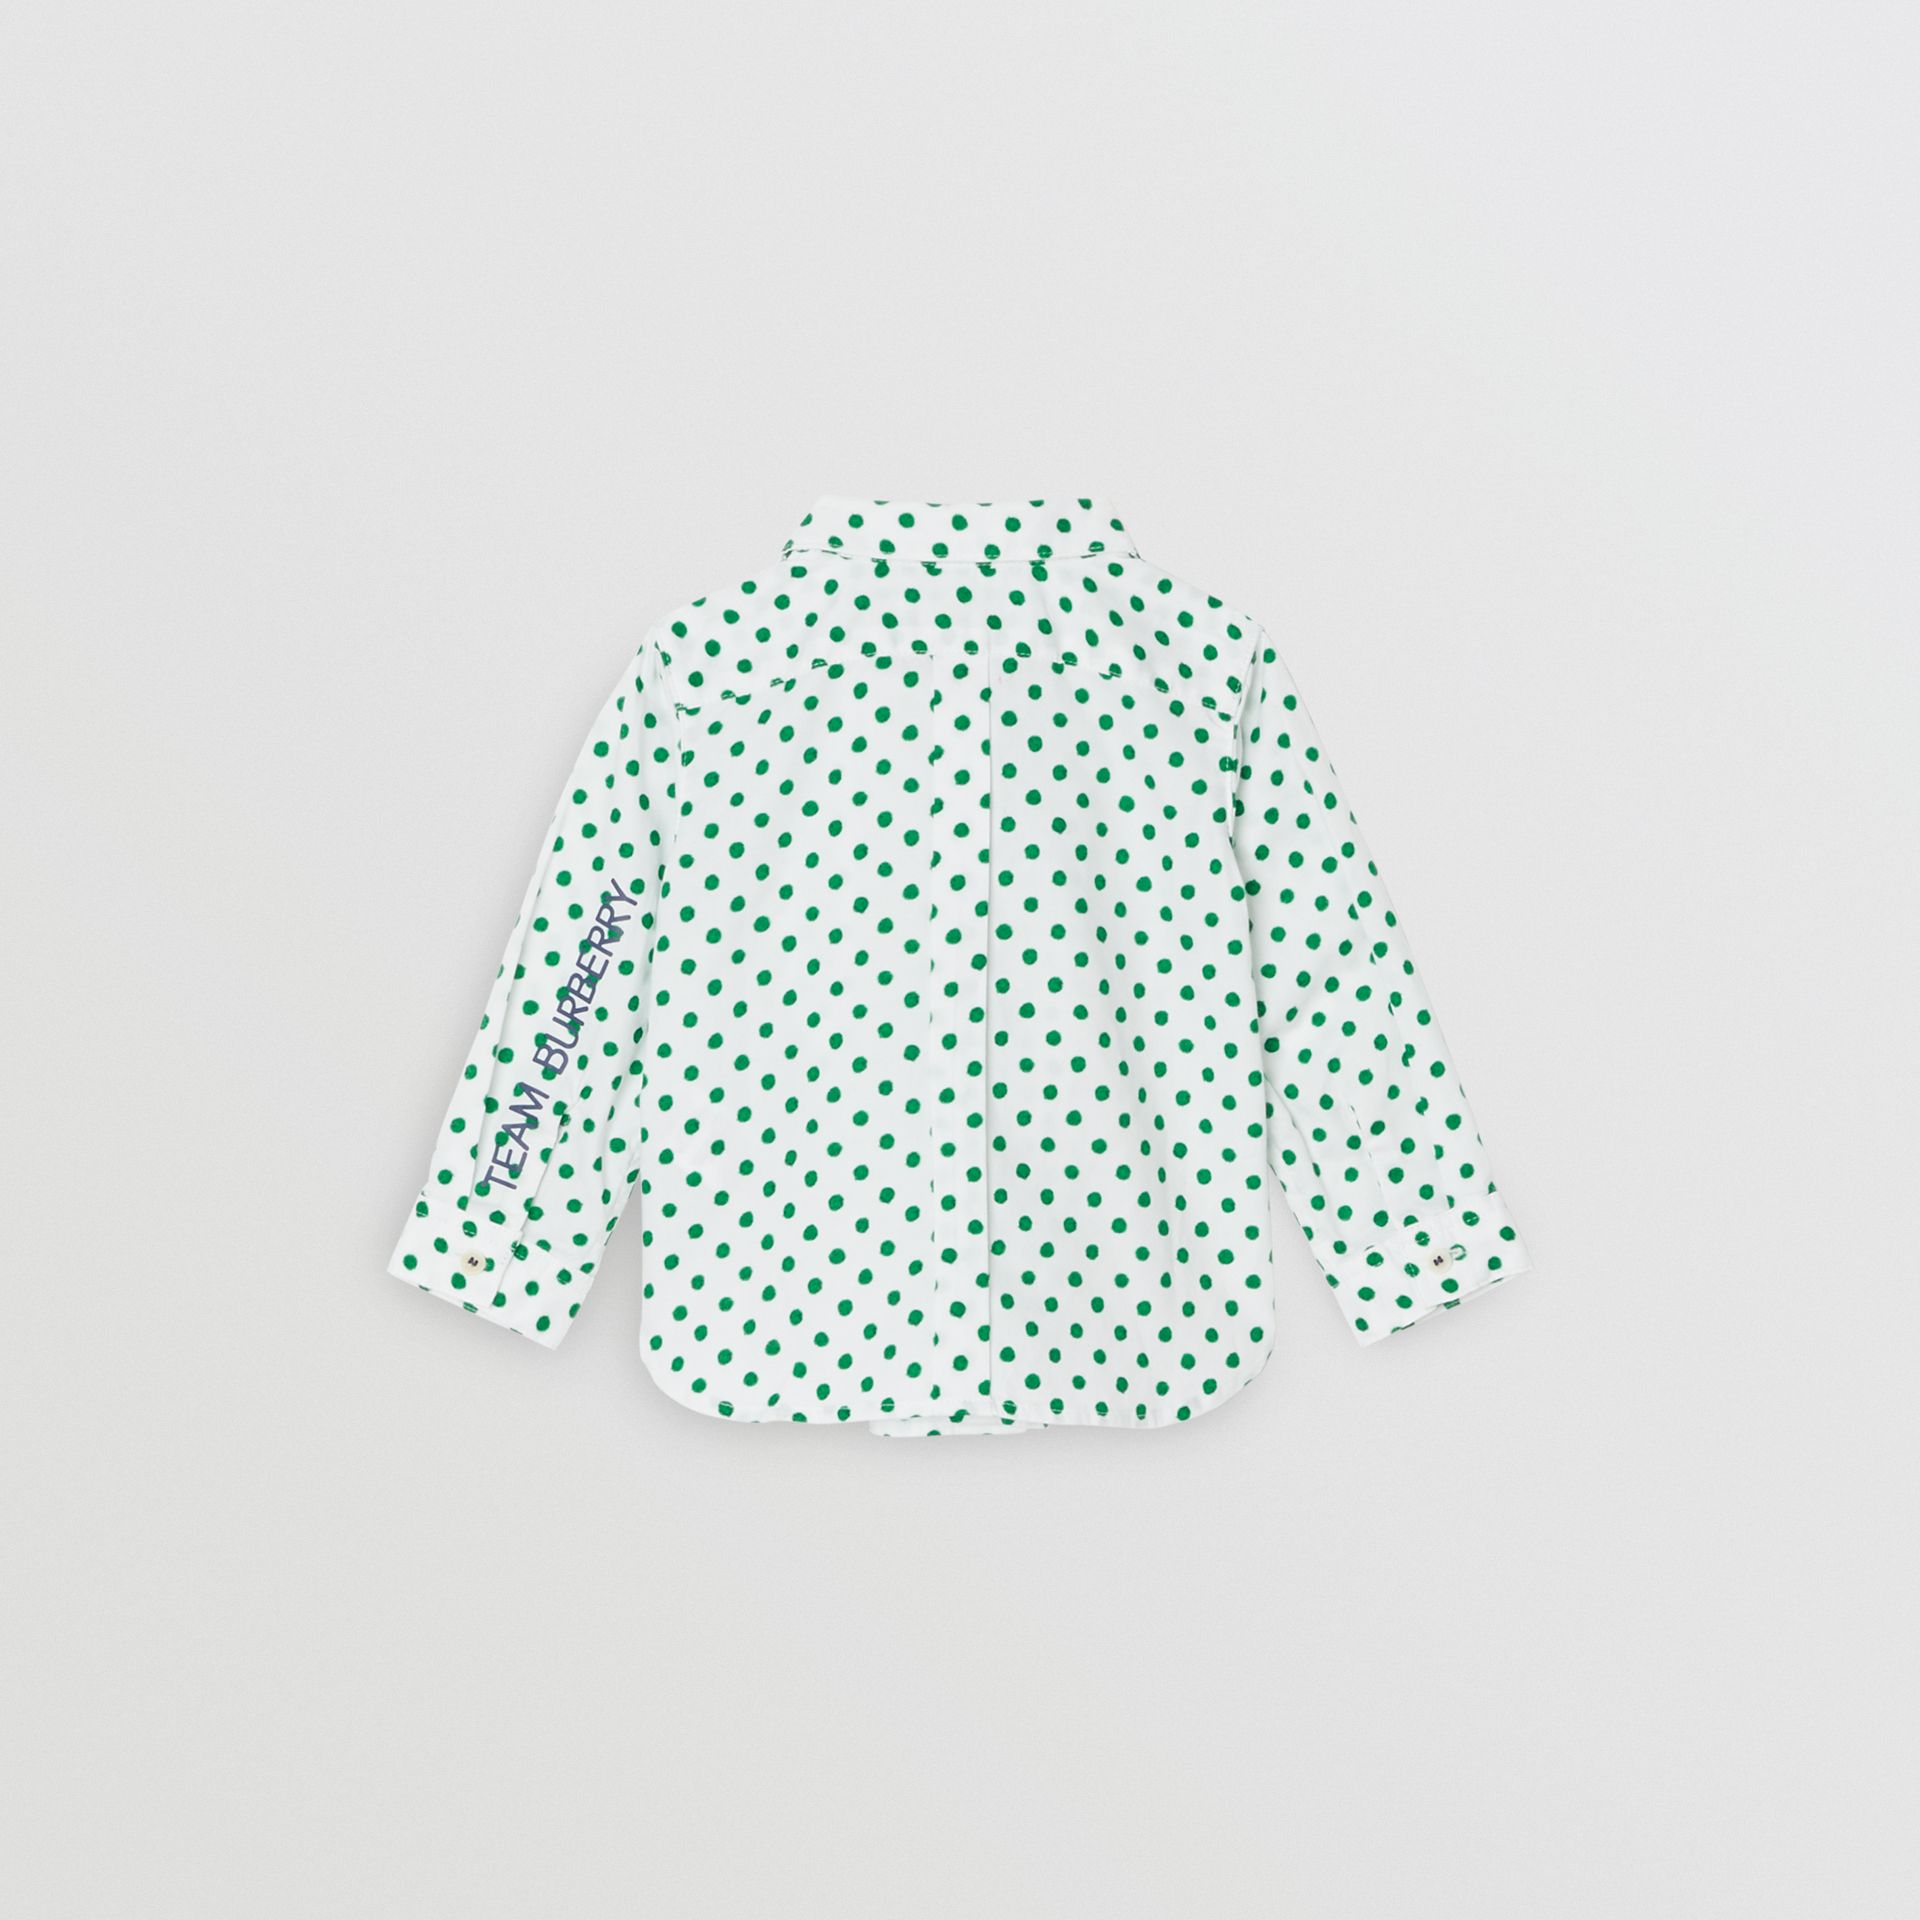 Polka Dot Cotton Oxford Shirt in Emerald Green - Children | Burberry United Kingdom - gallery image 3